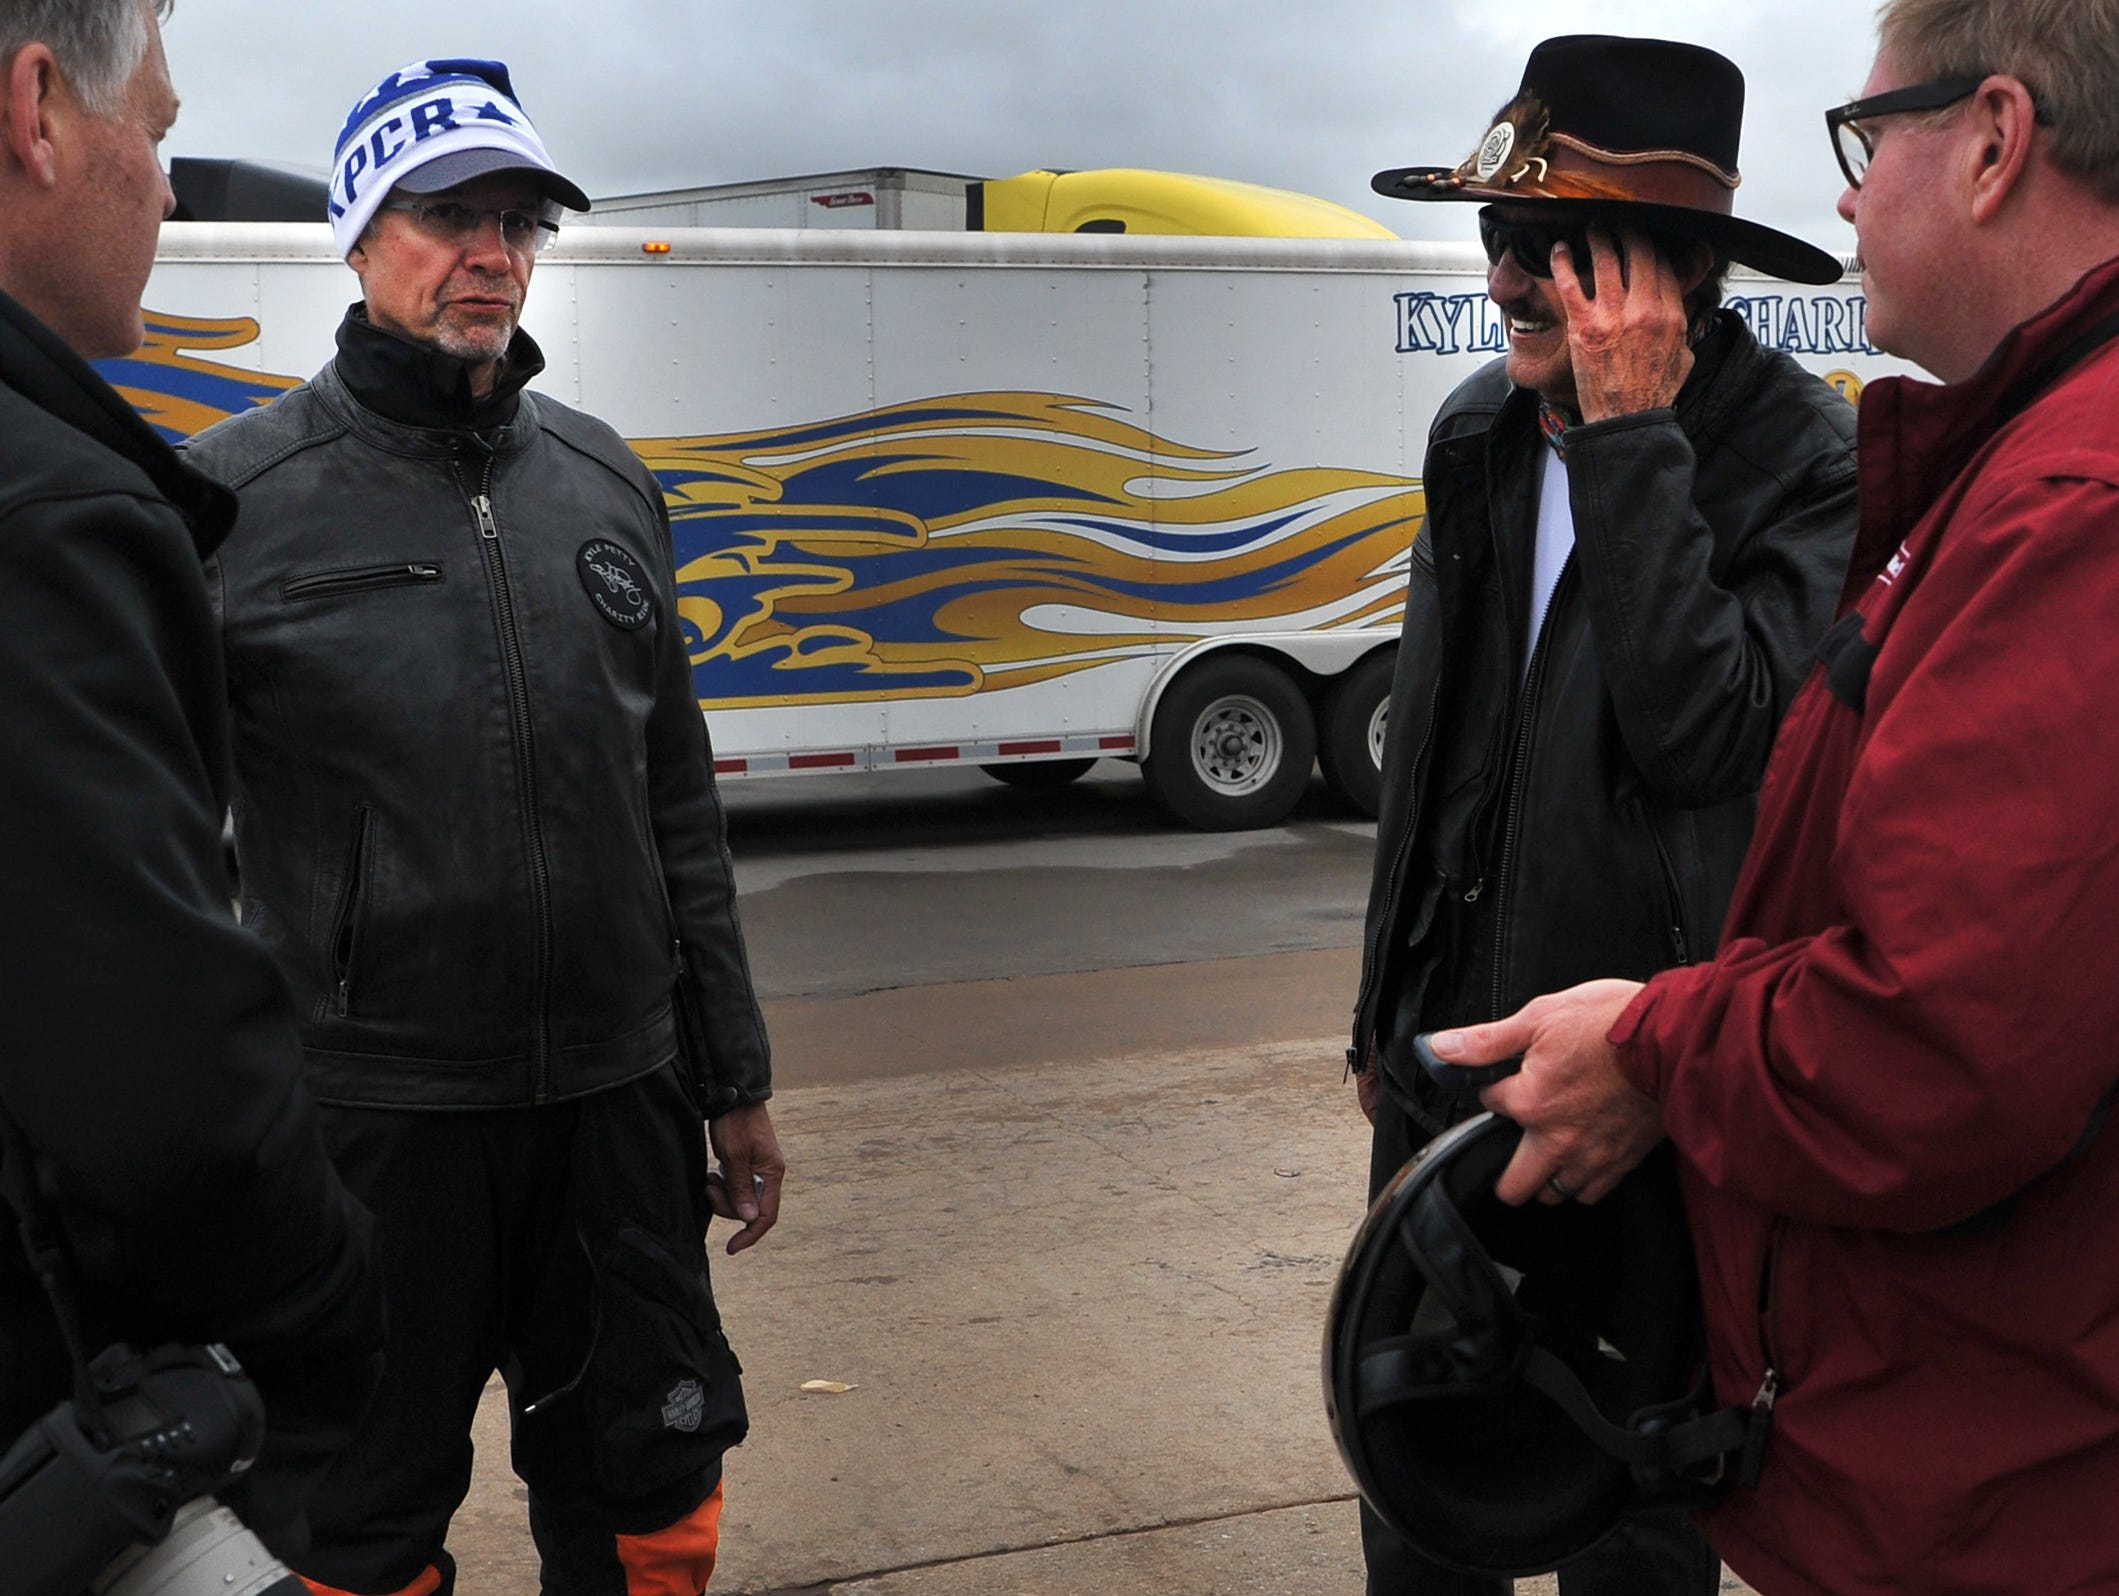 Kyle Petty left, stands with his father, Richard after their Charity Ride made a Wichita Falls pitstop, Wednesday morning to refuel and meet fans. Kyle Petty began the charity ride 25-years-ago by combining his love for helping others with motorcycles, according to a release.